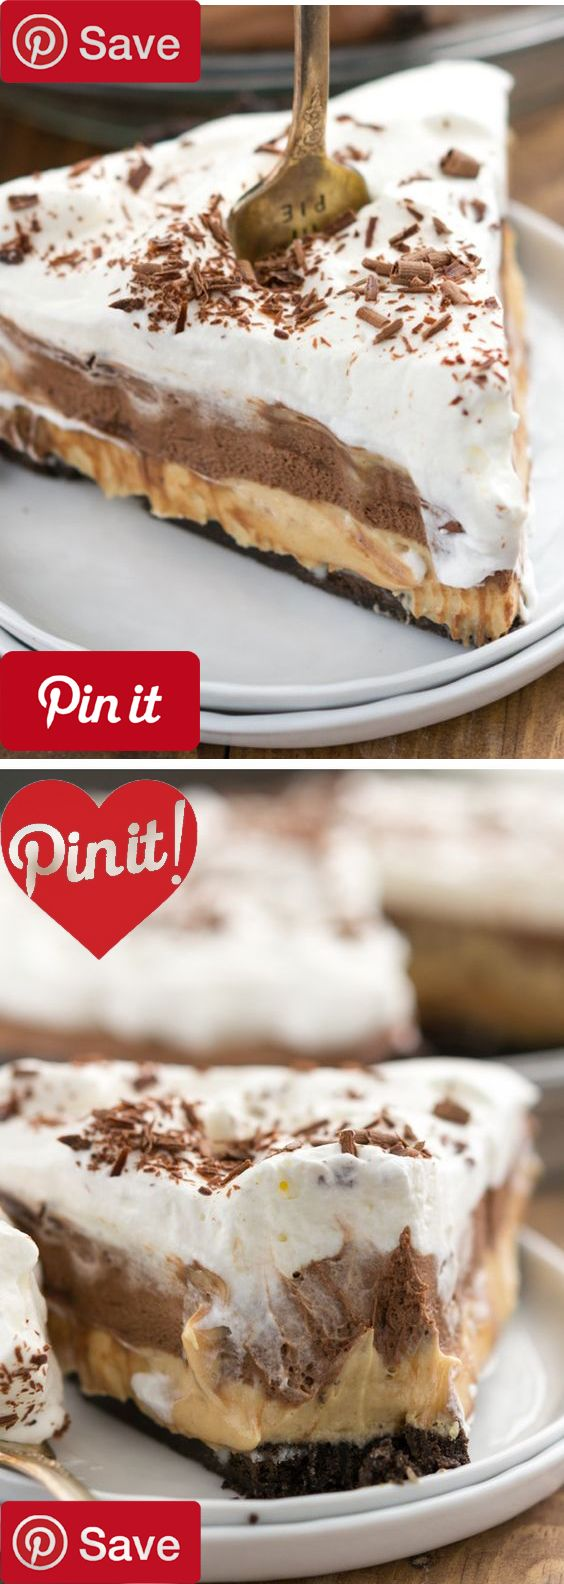 DIY No Bake Peanut Butter Chocolate Cream Pie -Ingredients  Vegetarian  Condiments   cup Peanut butter  Baking & Spices  4 oz Baking chocolate semi-sweet  3 tbsp Powdered sugar  3 tsp Vanilla extract  Snacks  25 Oreo cookies  Dairy  6 tbsp Butter  1 (14 ounce) can Condensed milk sweetened  2 cups Heavy whipping cream #delicious #diy #Easy #food #love #recipe #recipes #tutorial #yummy @mabarto - Make sure to follow cause we post alot of food recipes and DIY we post Food and drinks gifts…